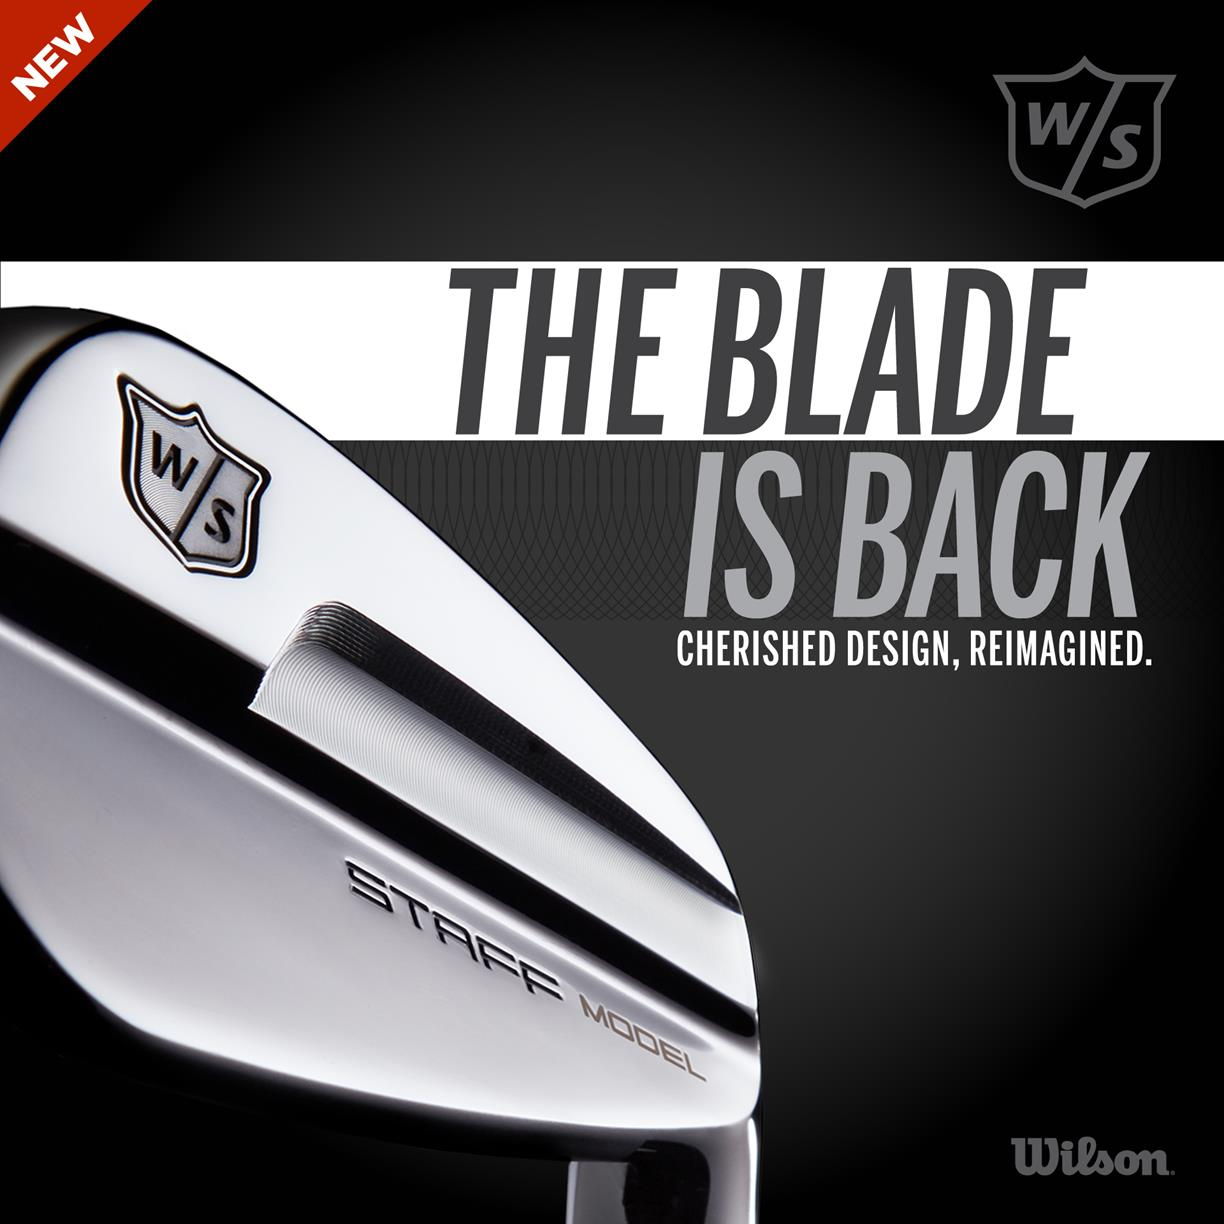 Golf Support: Short Game Made Easy - New Wilson Staff Blade + More